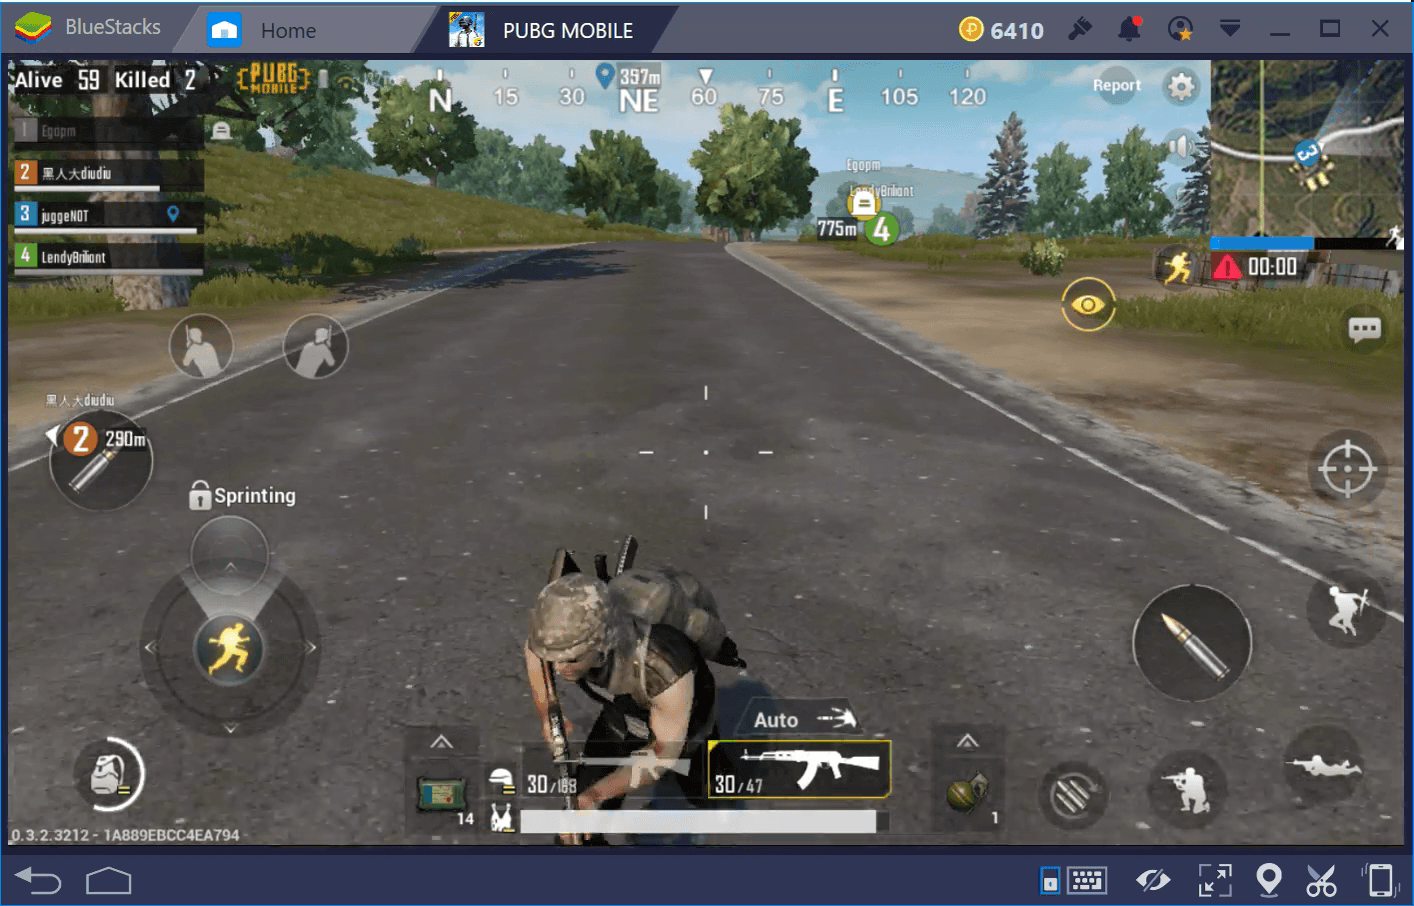 Top 5 Games to Play With the all New BlueStacks 4